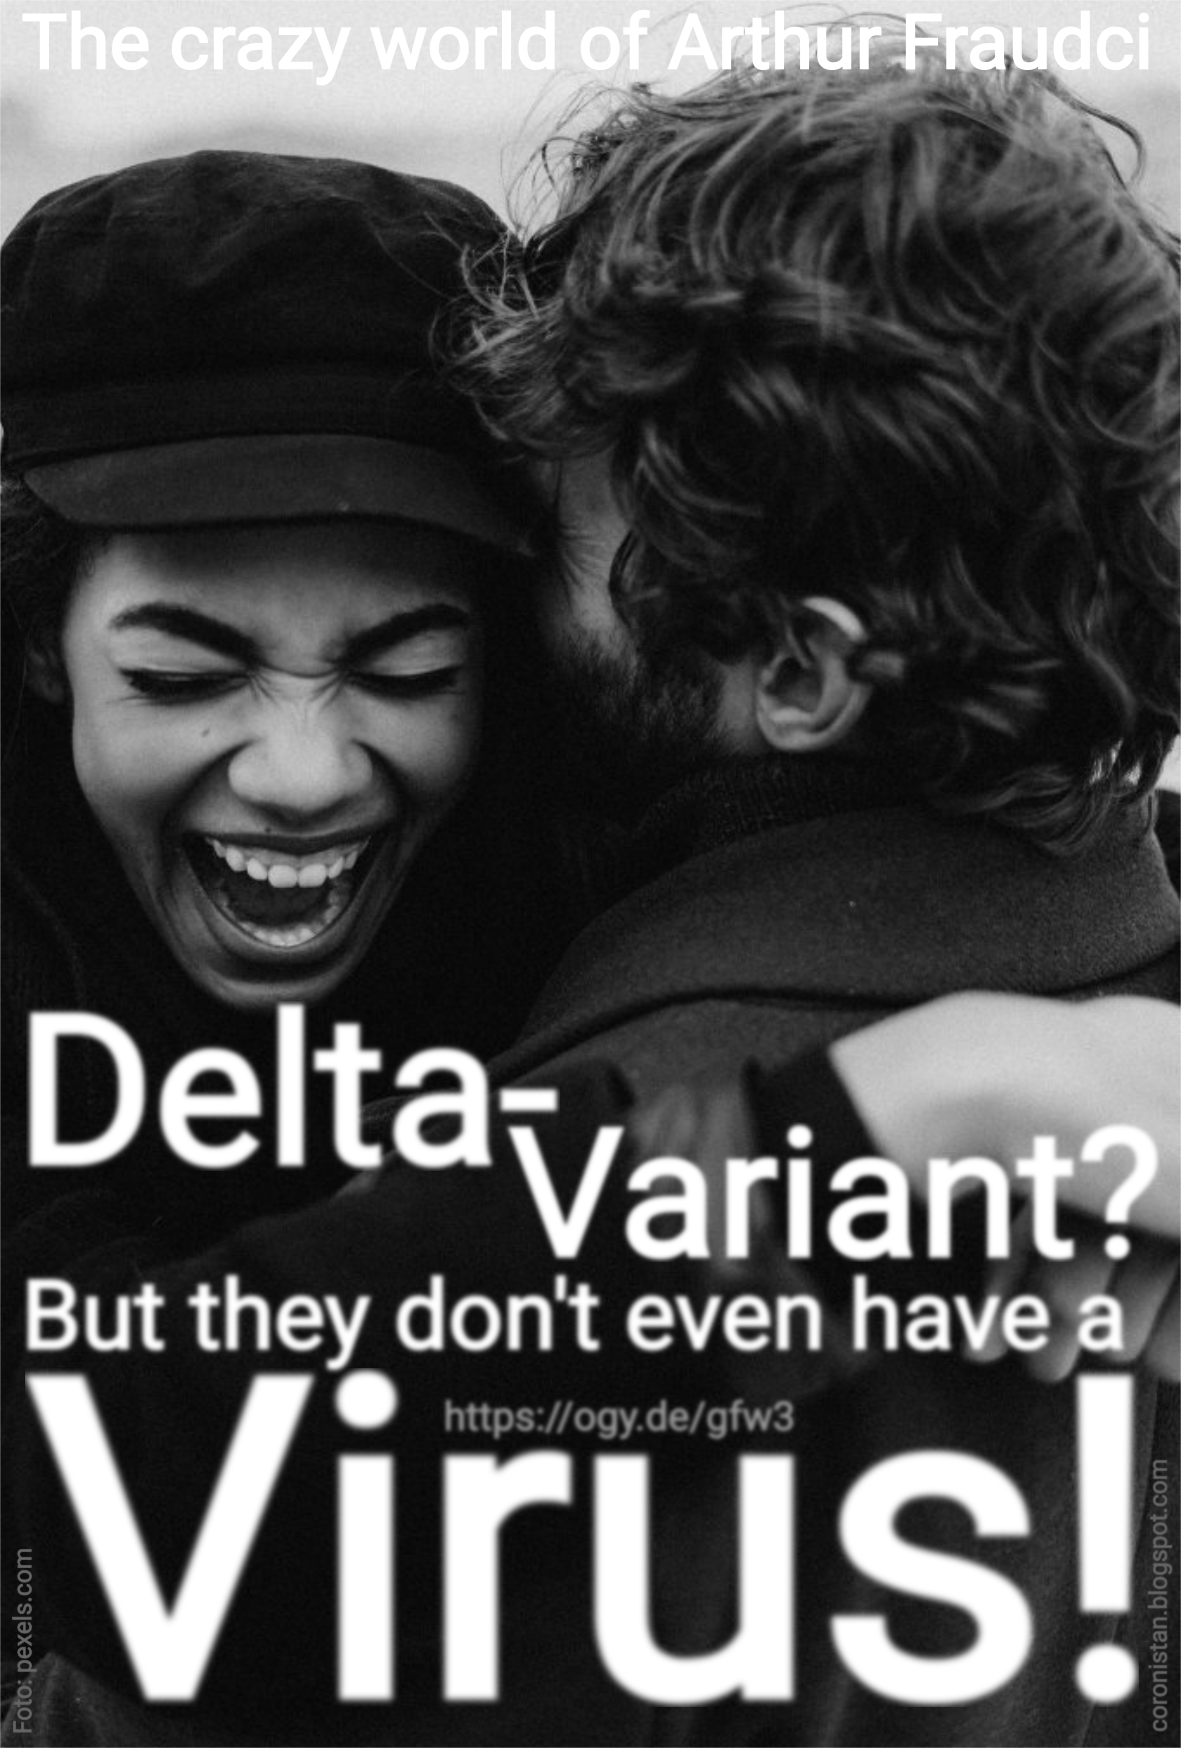 Delta-Variant? They don't even have a virus!!! https://ogy.de/gfw3